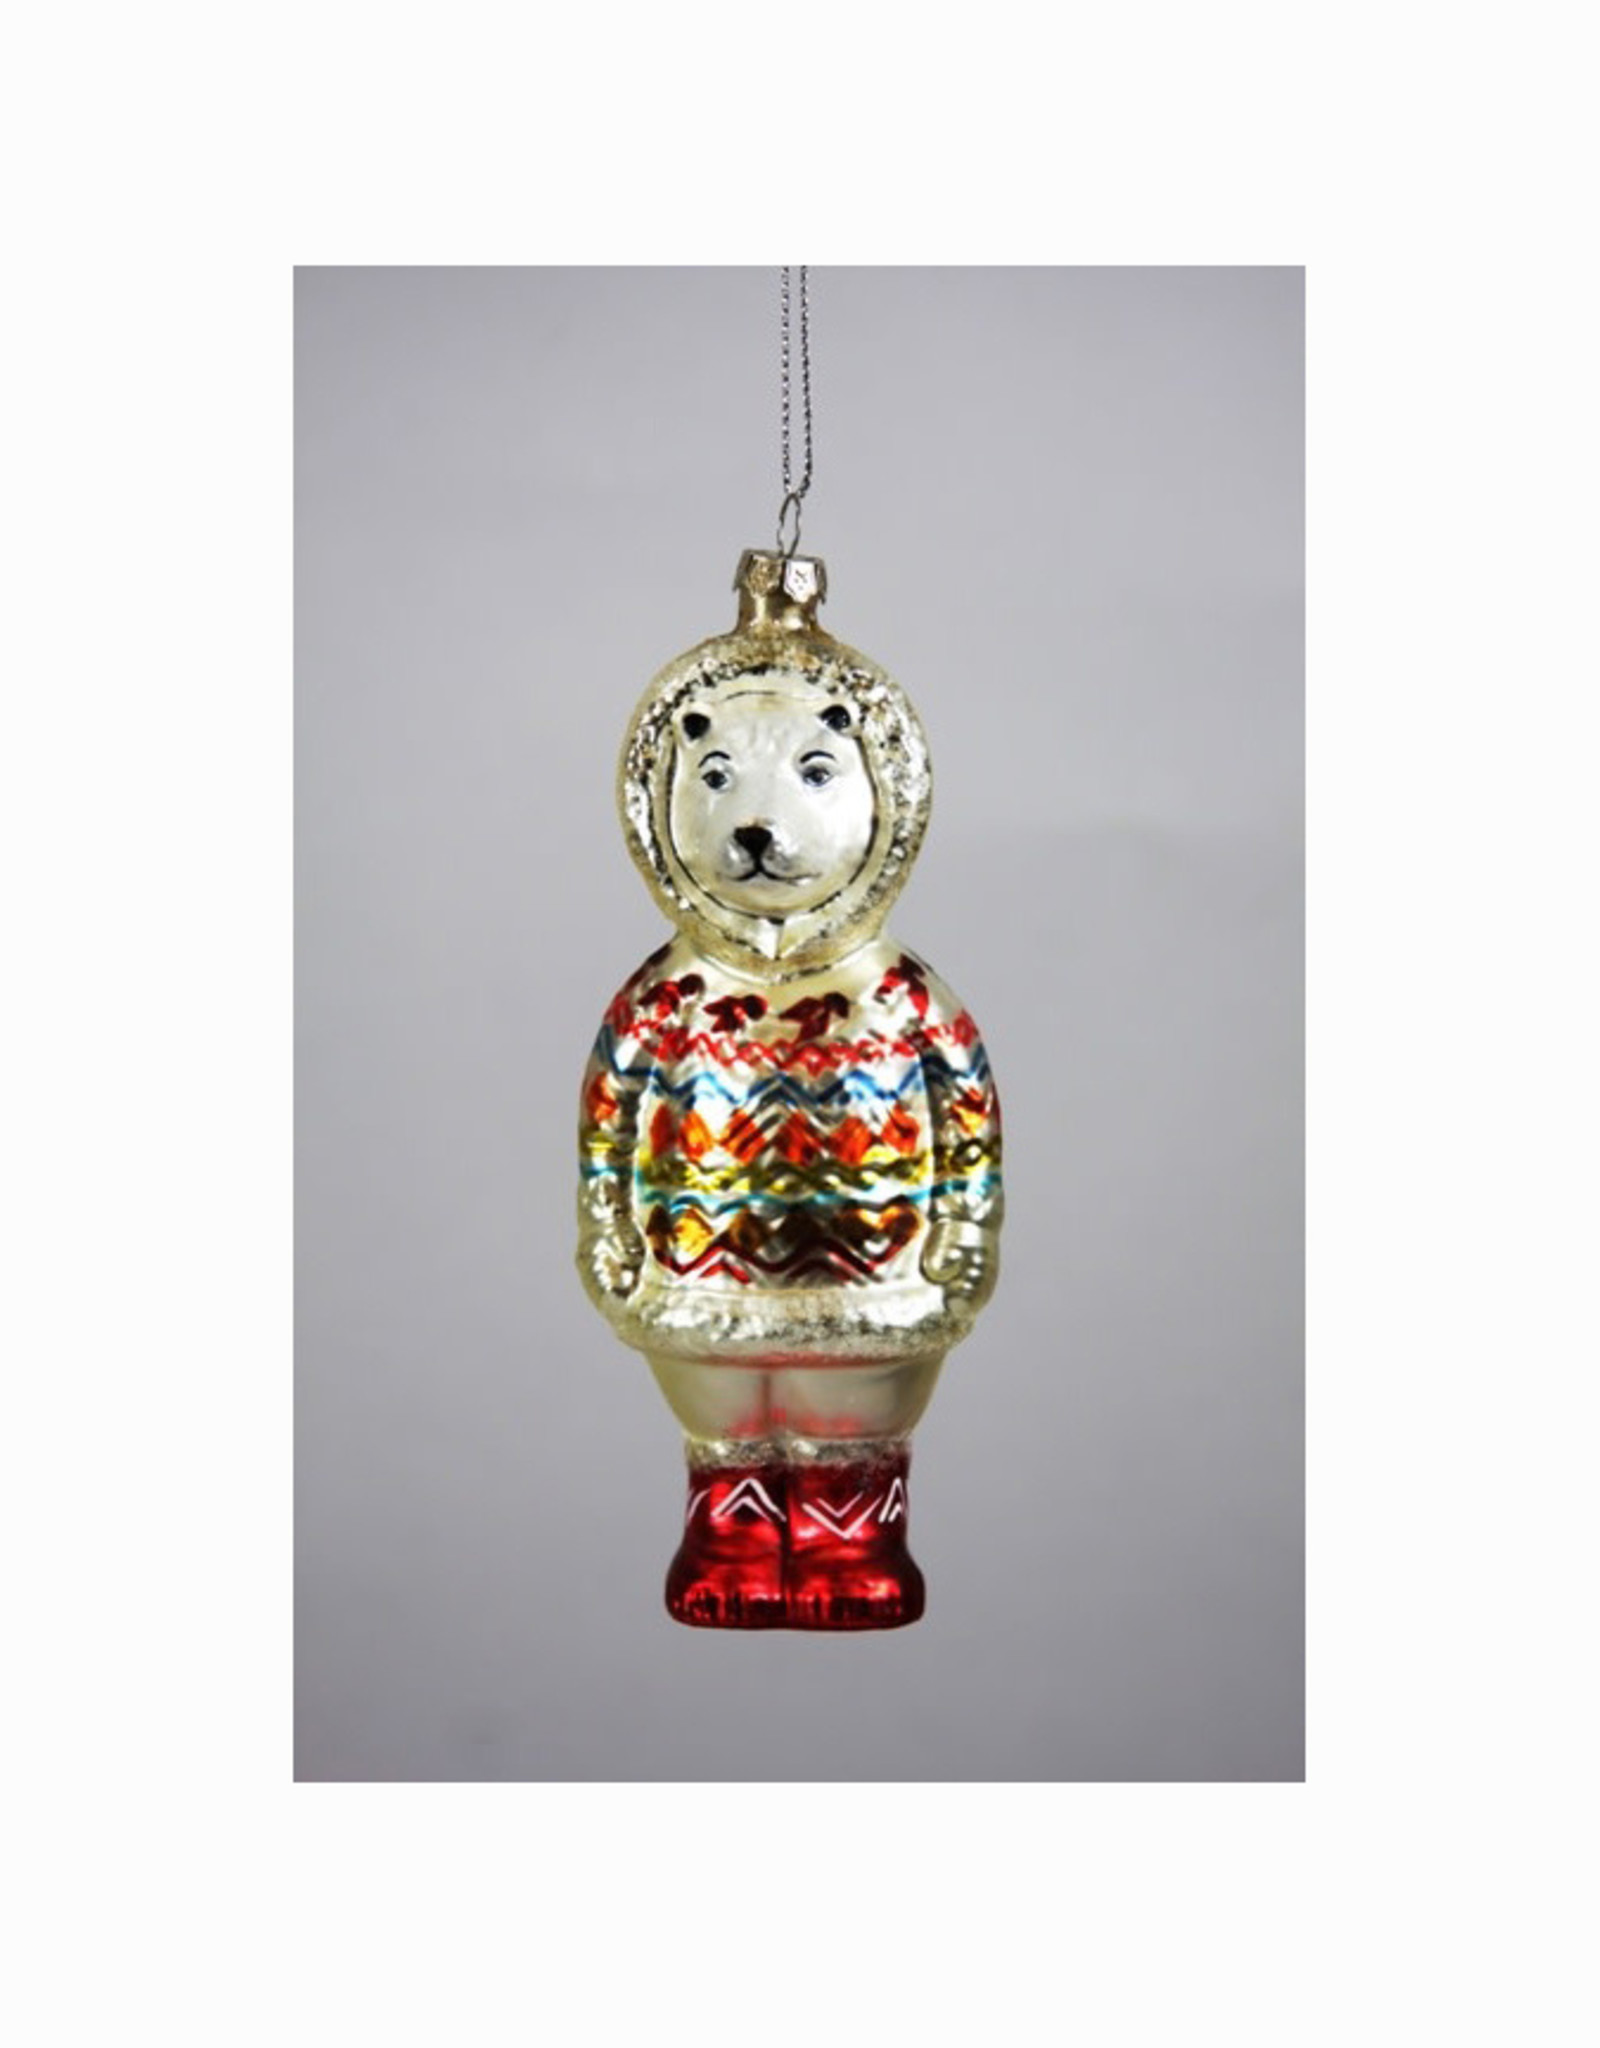 Cozy Polar Bear Ornament